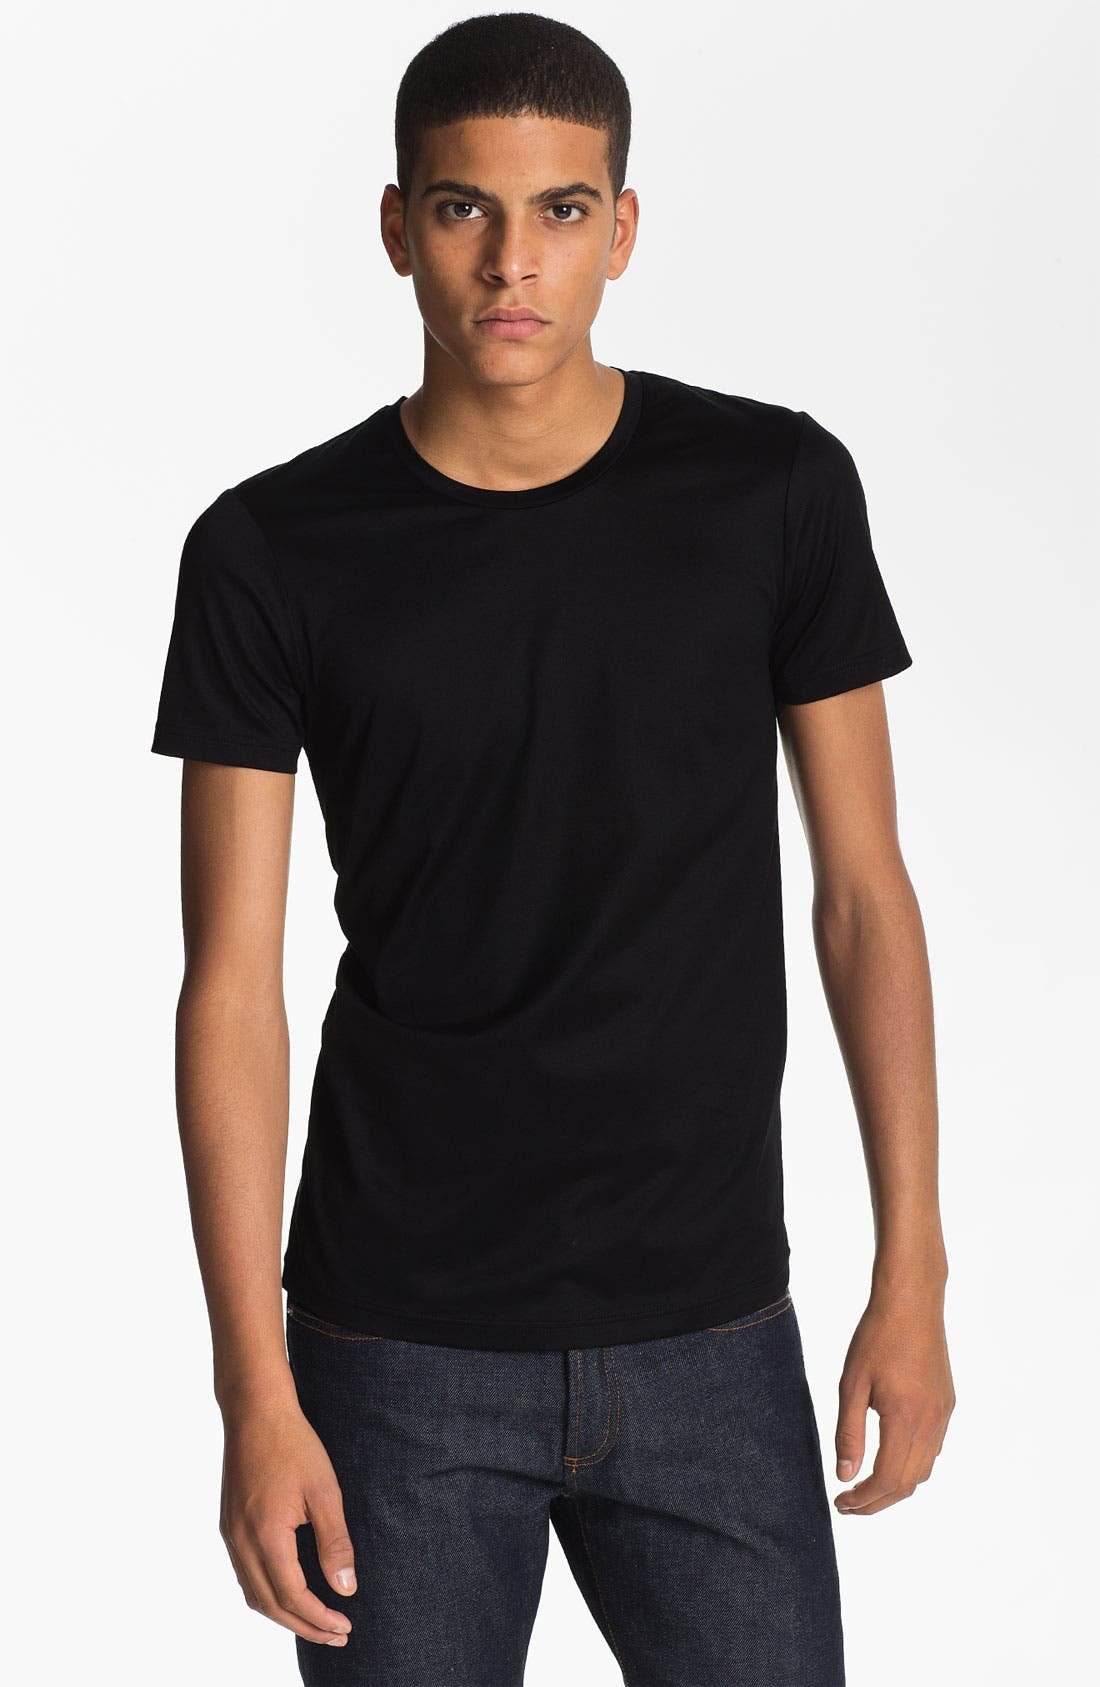 Alternate Image 1 Selected - Jil Sander Crewneck T-Shirt